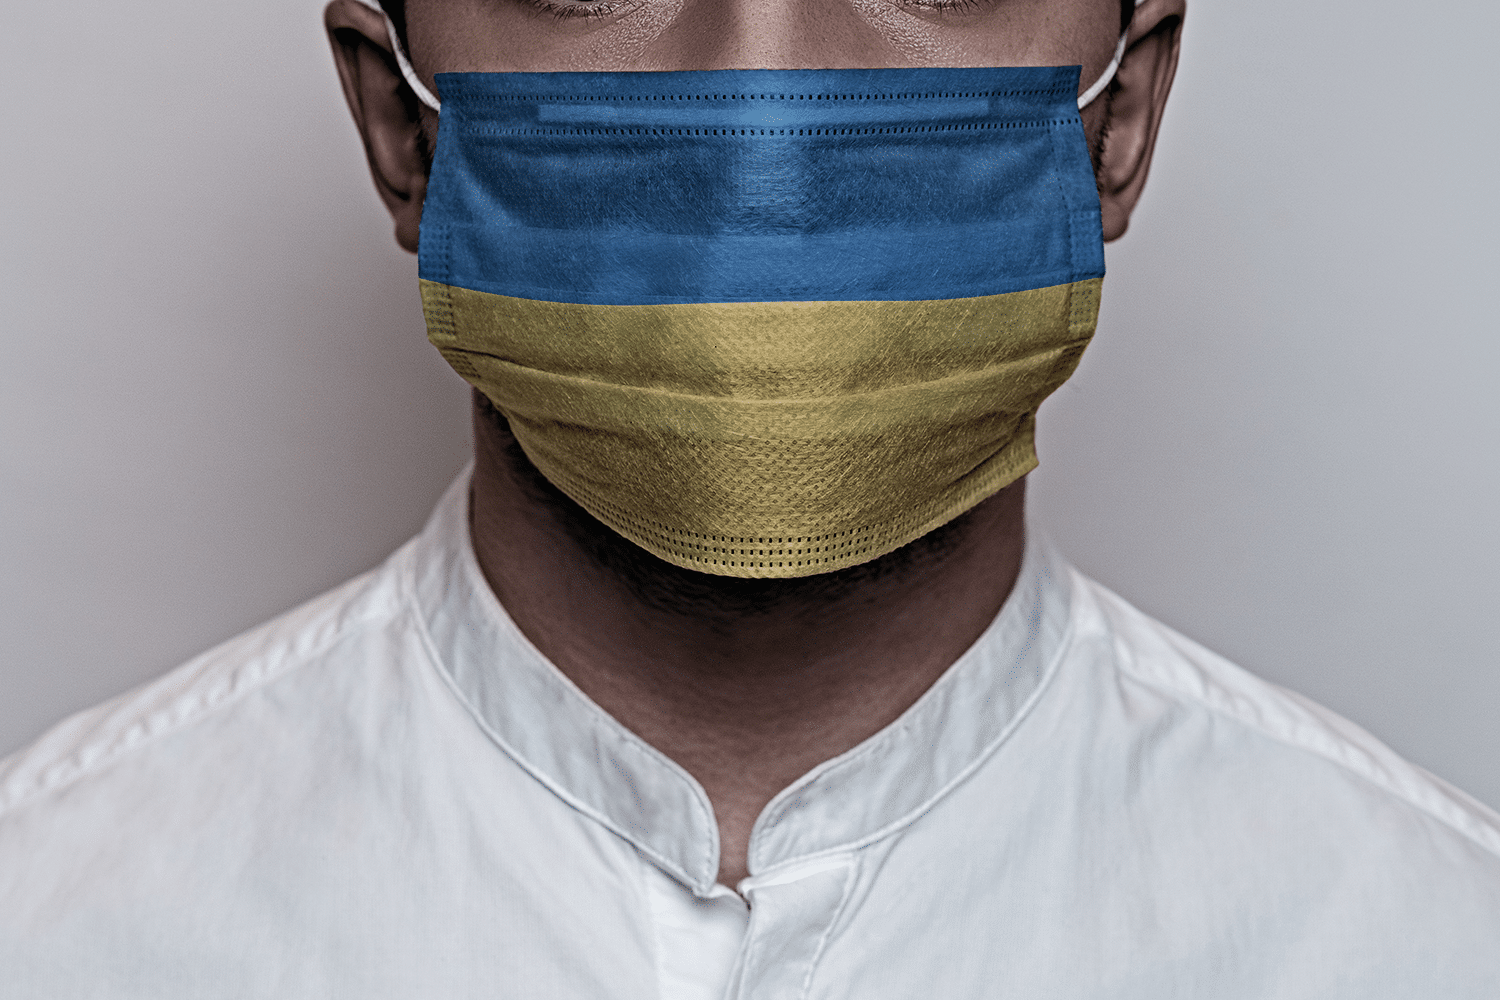 Ukraine, trust and responssability in times of pandemic